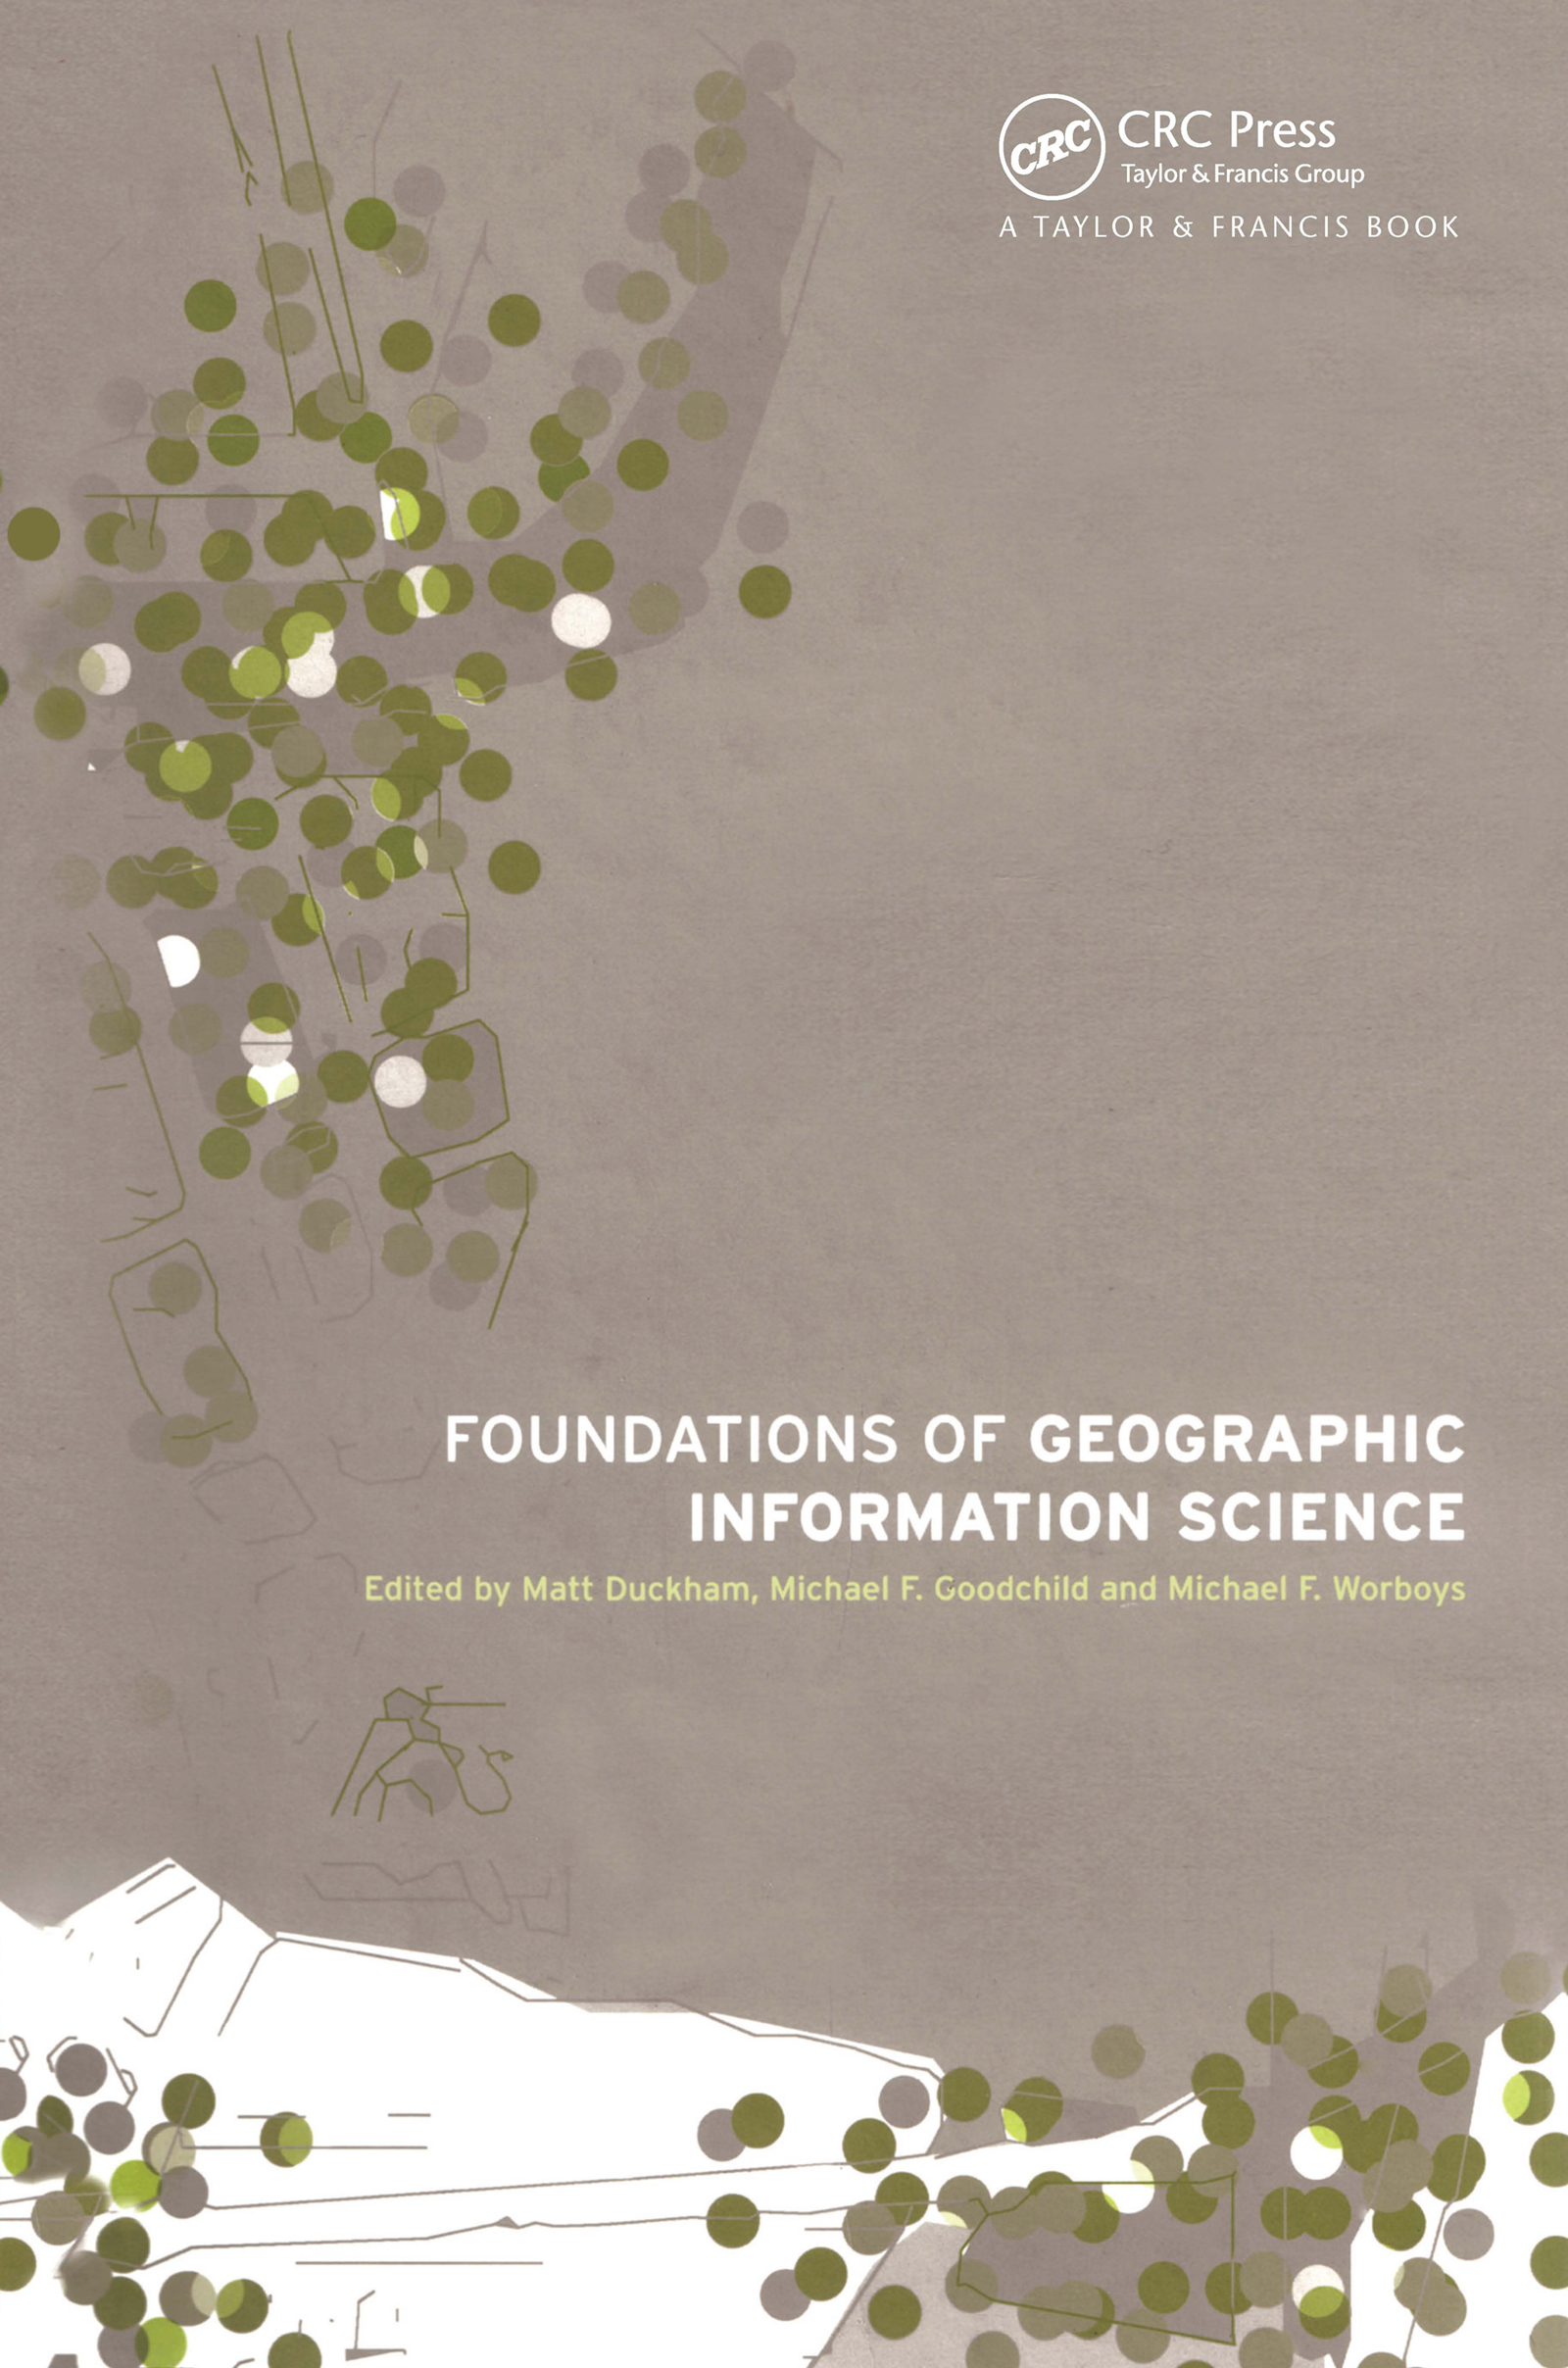 Foundations of Geographic Information Science